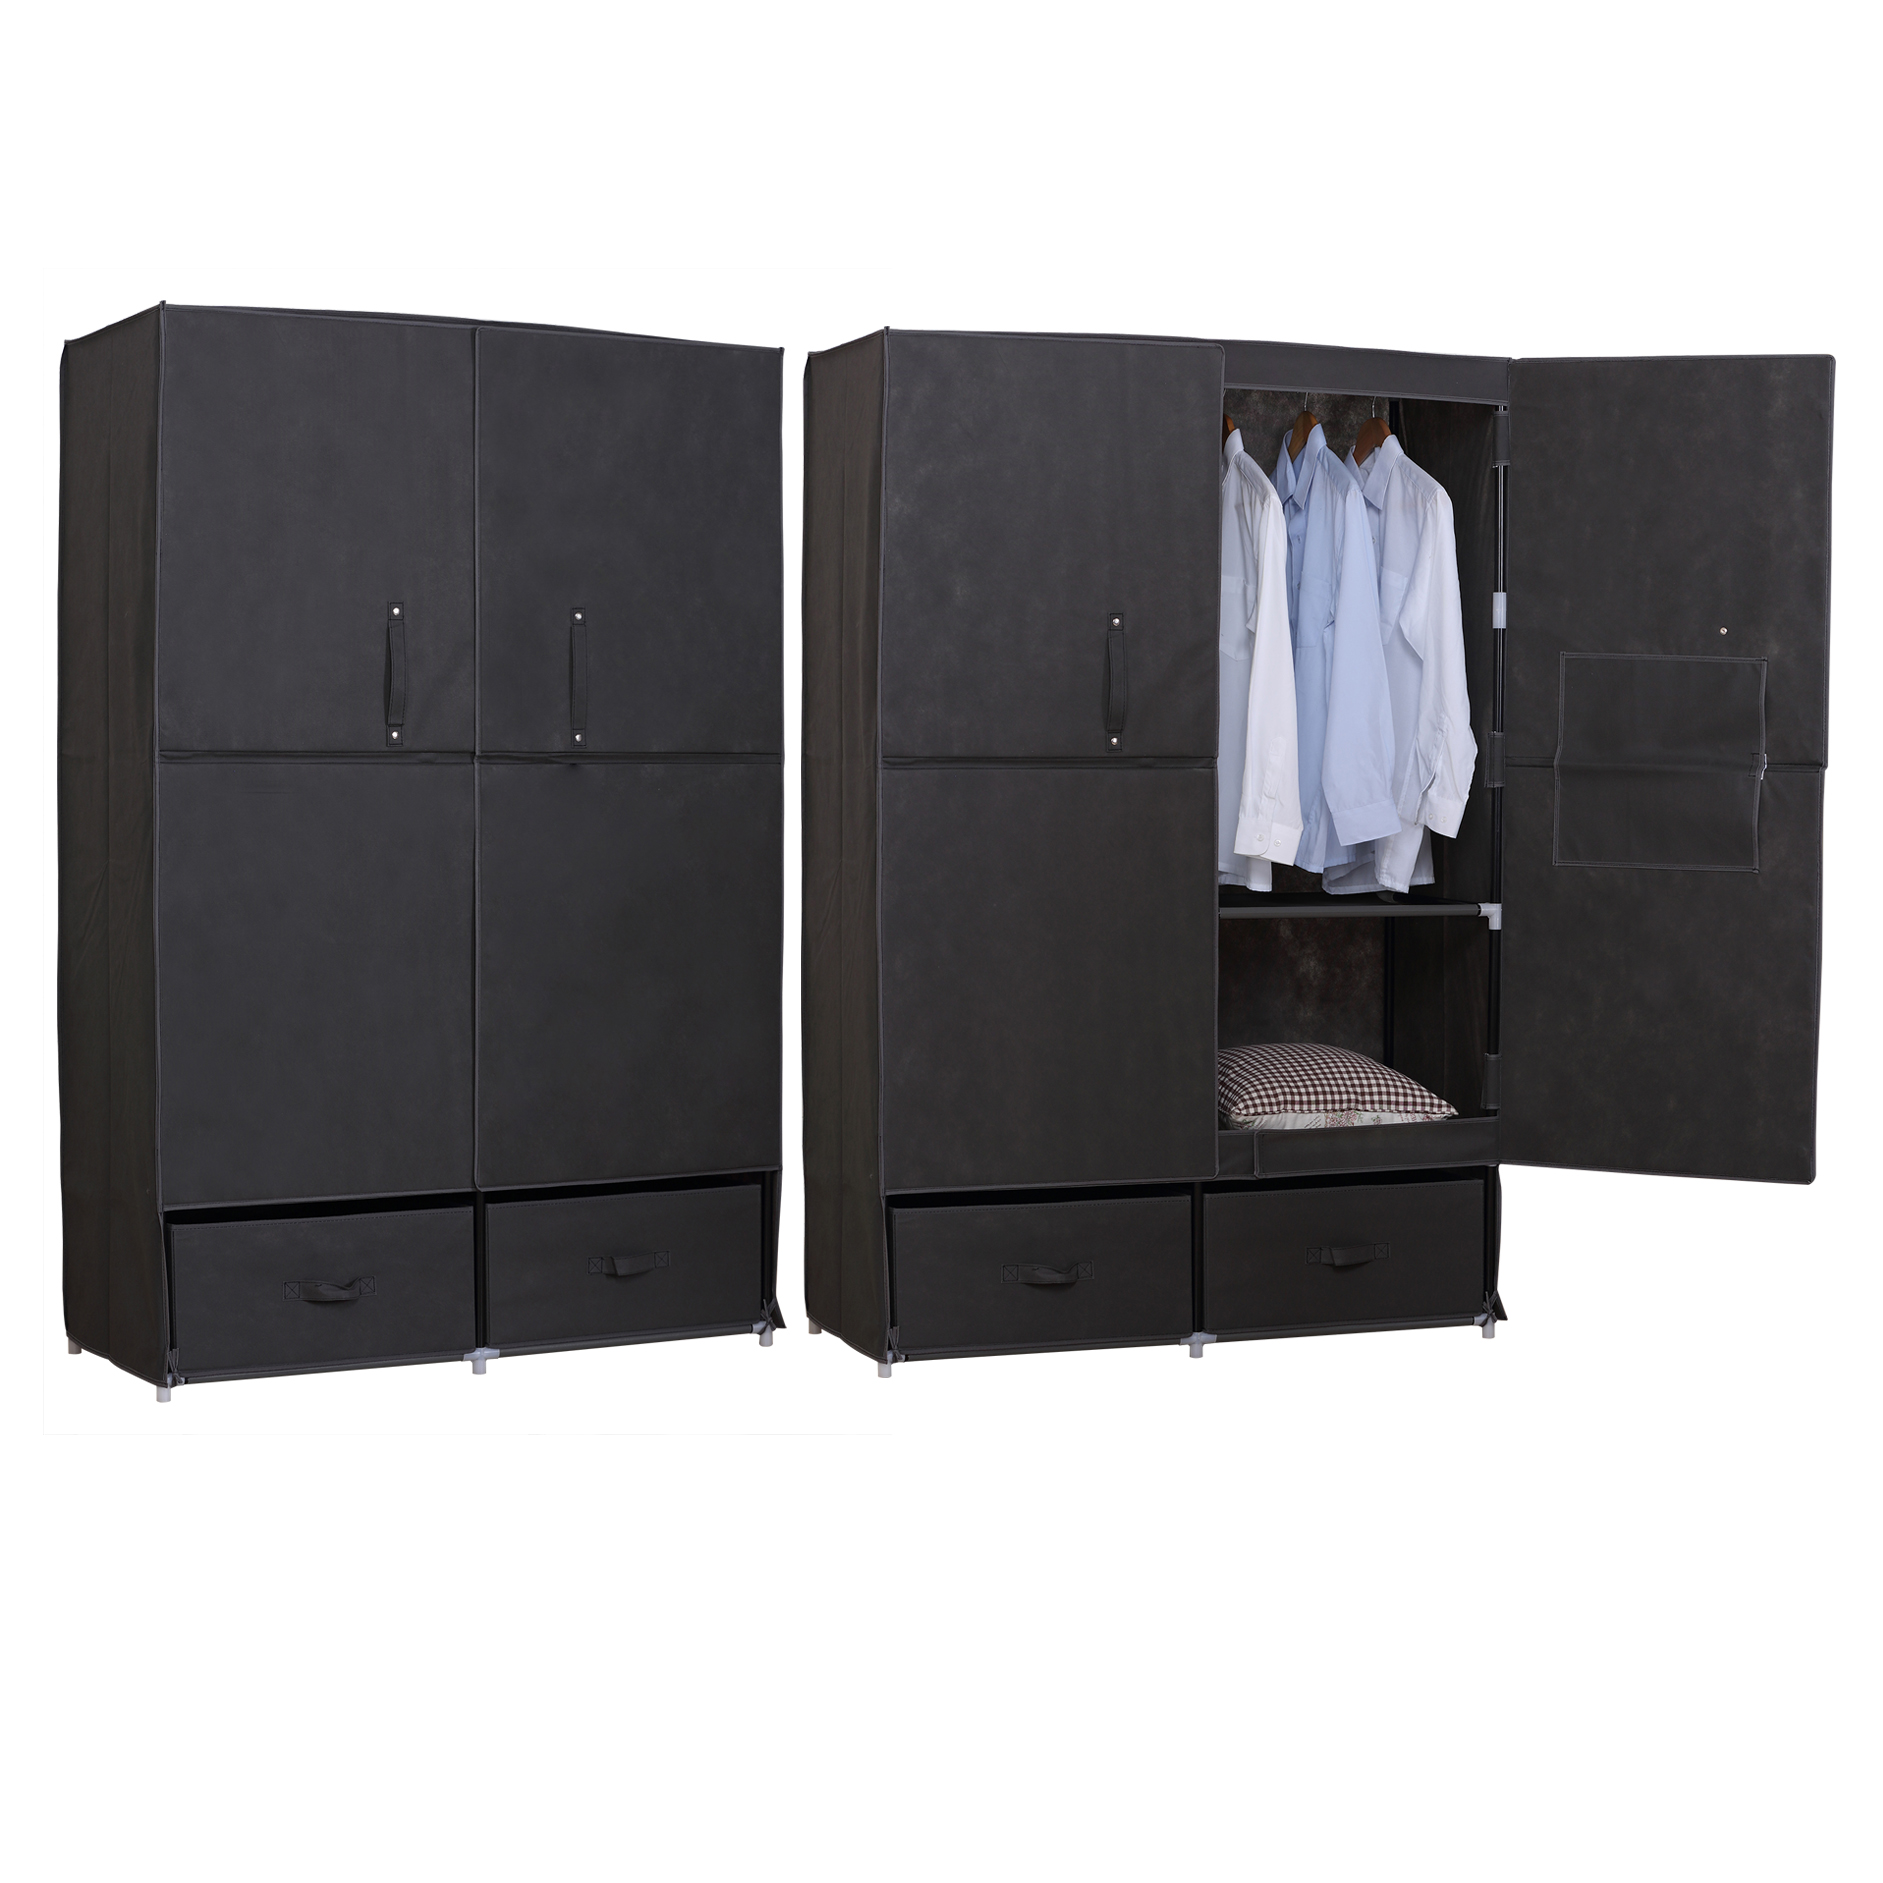 kleiderschrank garderobenschrank campingschrank faltschrank stoff xxl ss5023gr ebay. Black Bedroom Furniture Sets. Home Design Ideas